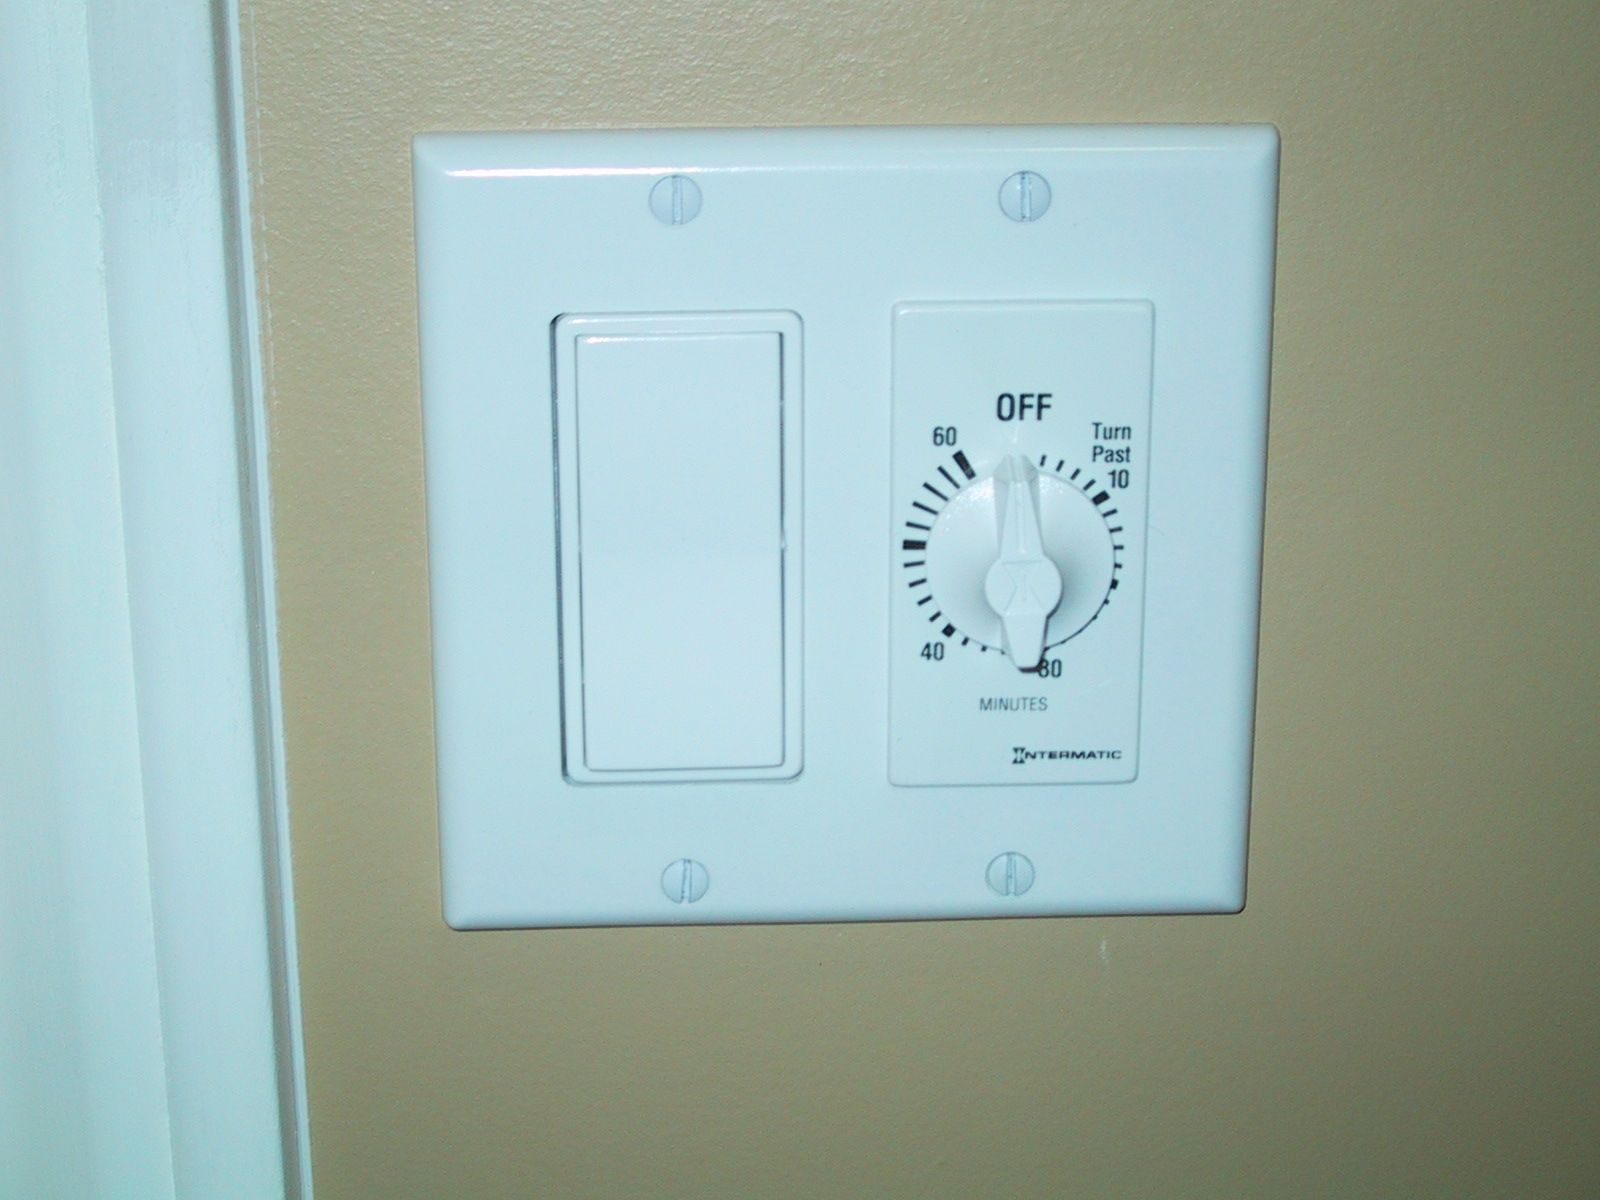 Bathroom ceiling fan timer switch httpladysrofo pinterest bathroom ceiling fan timer switch mozeypictures Image collections